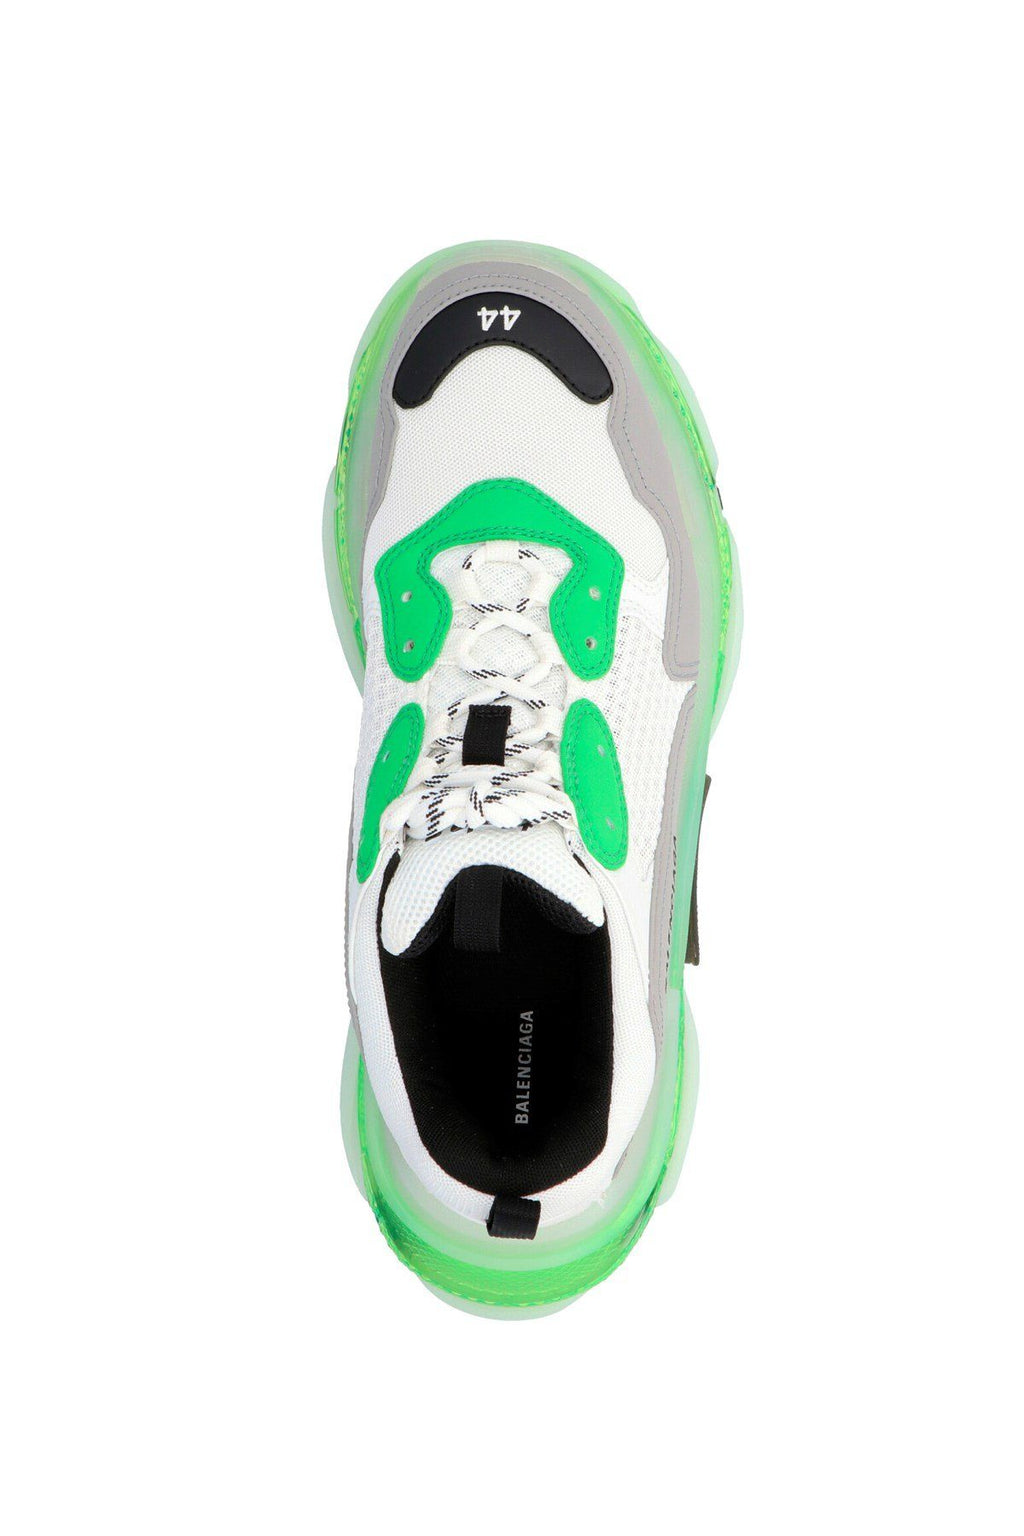 BALENCIAGA Triple S Clearsole Sneaker White/Green